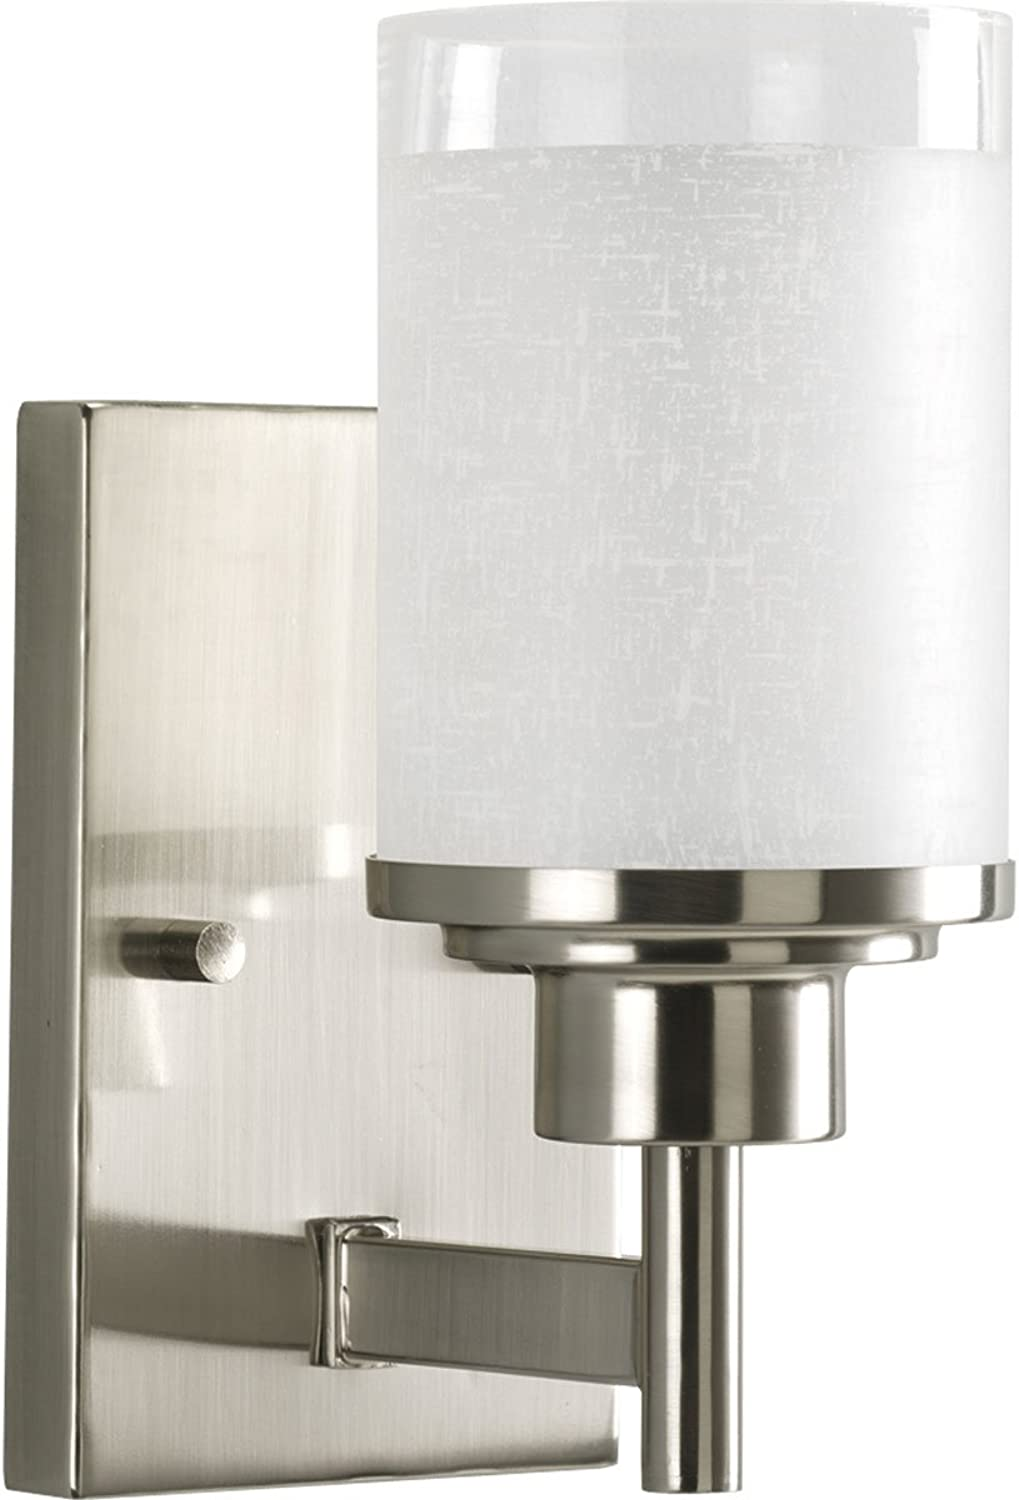 Progress Lighting P2959-09 1-Light Wall Bracket with White Linen Finished Glass and Clear Edge Accent Strip, Brushed Nickel